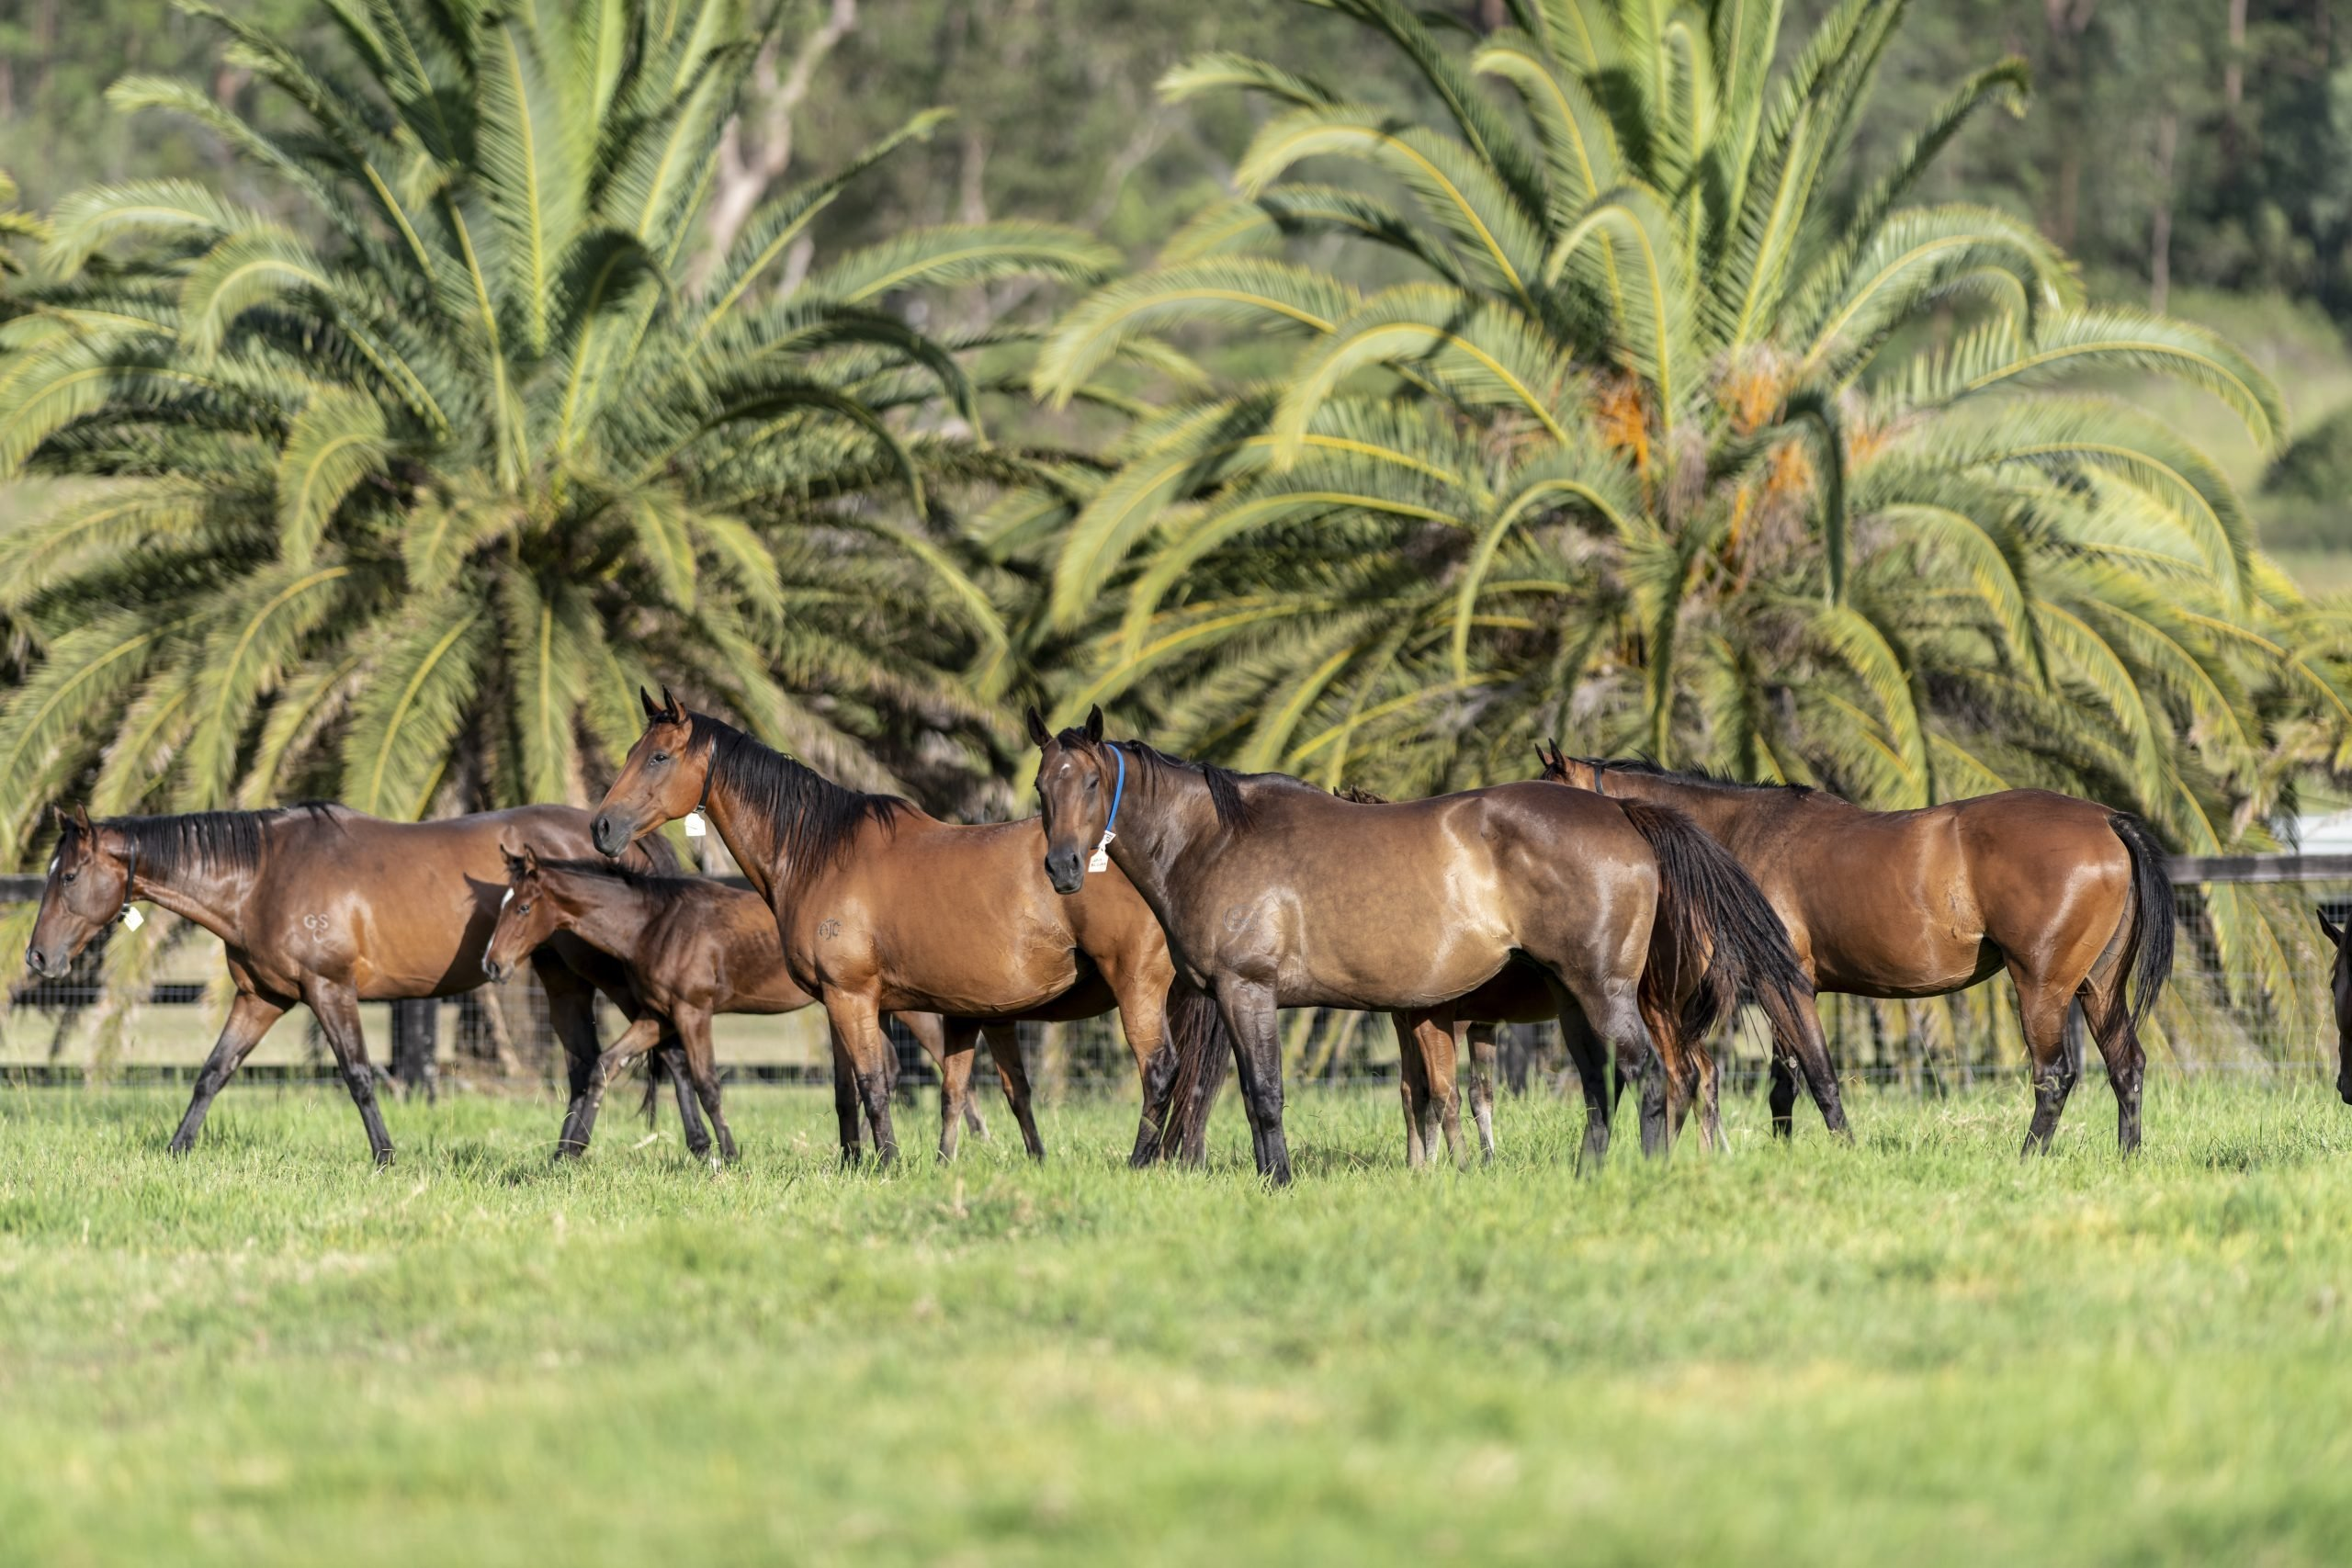 What business opportunities are available in the breeding industry?